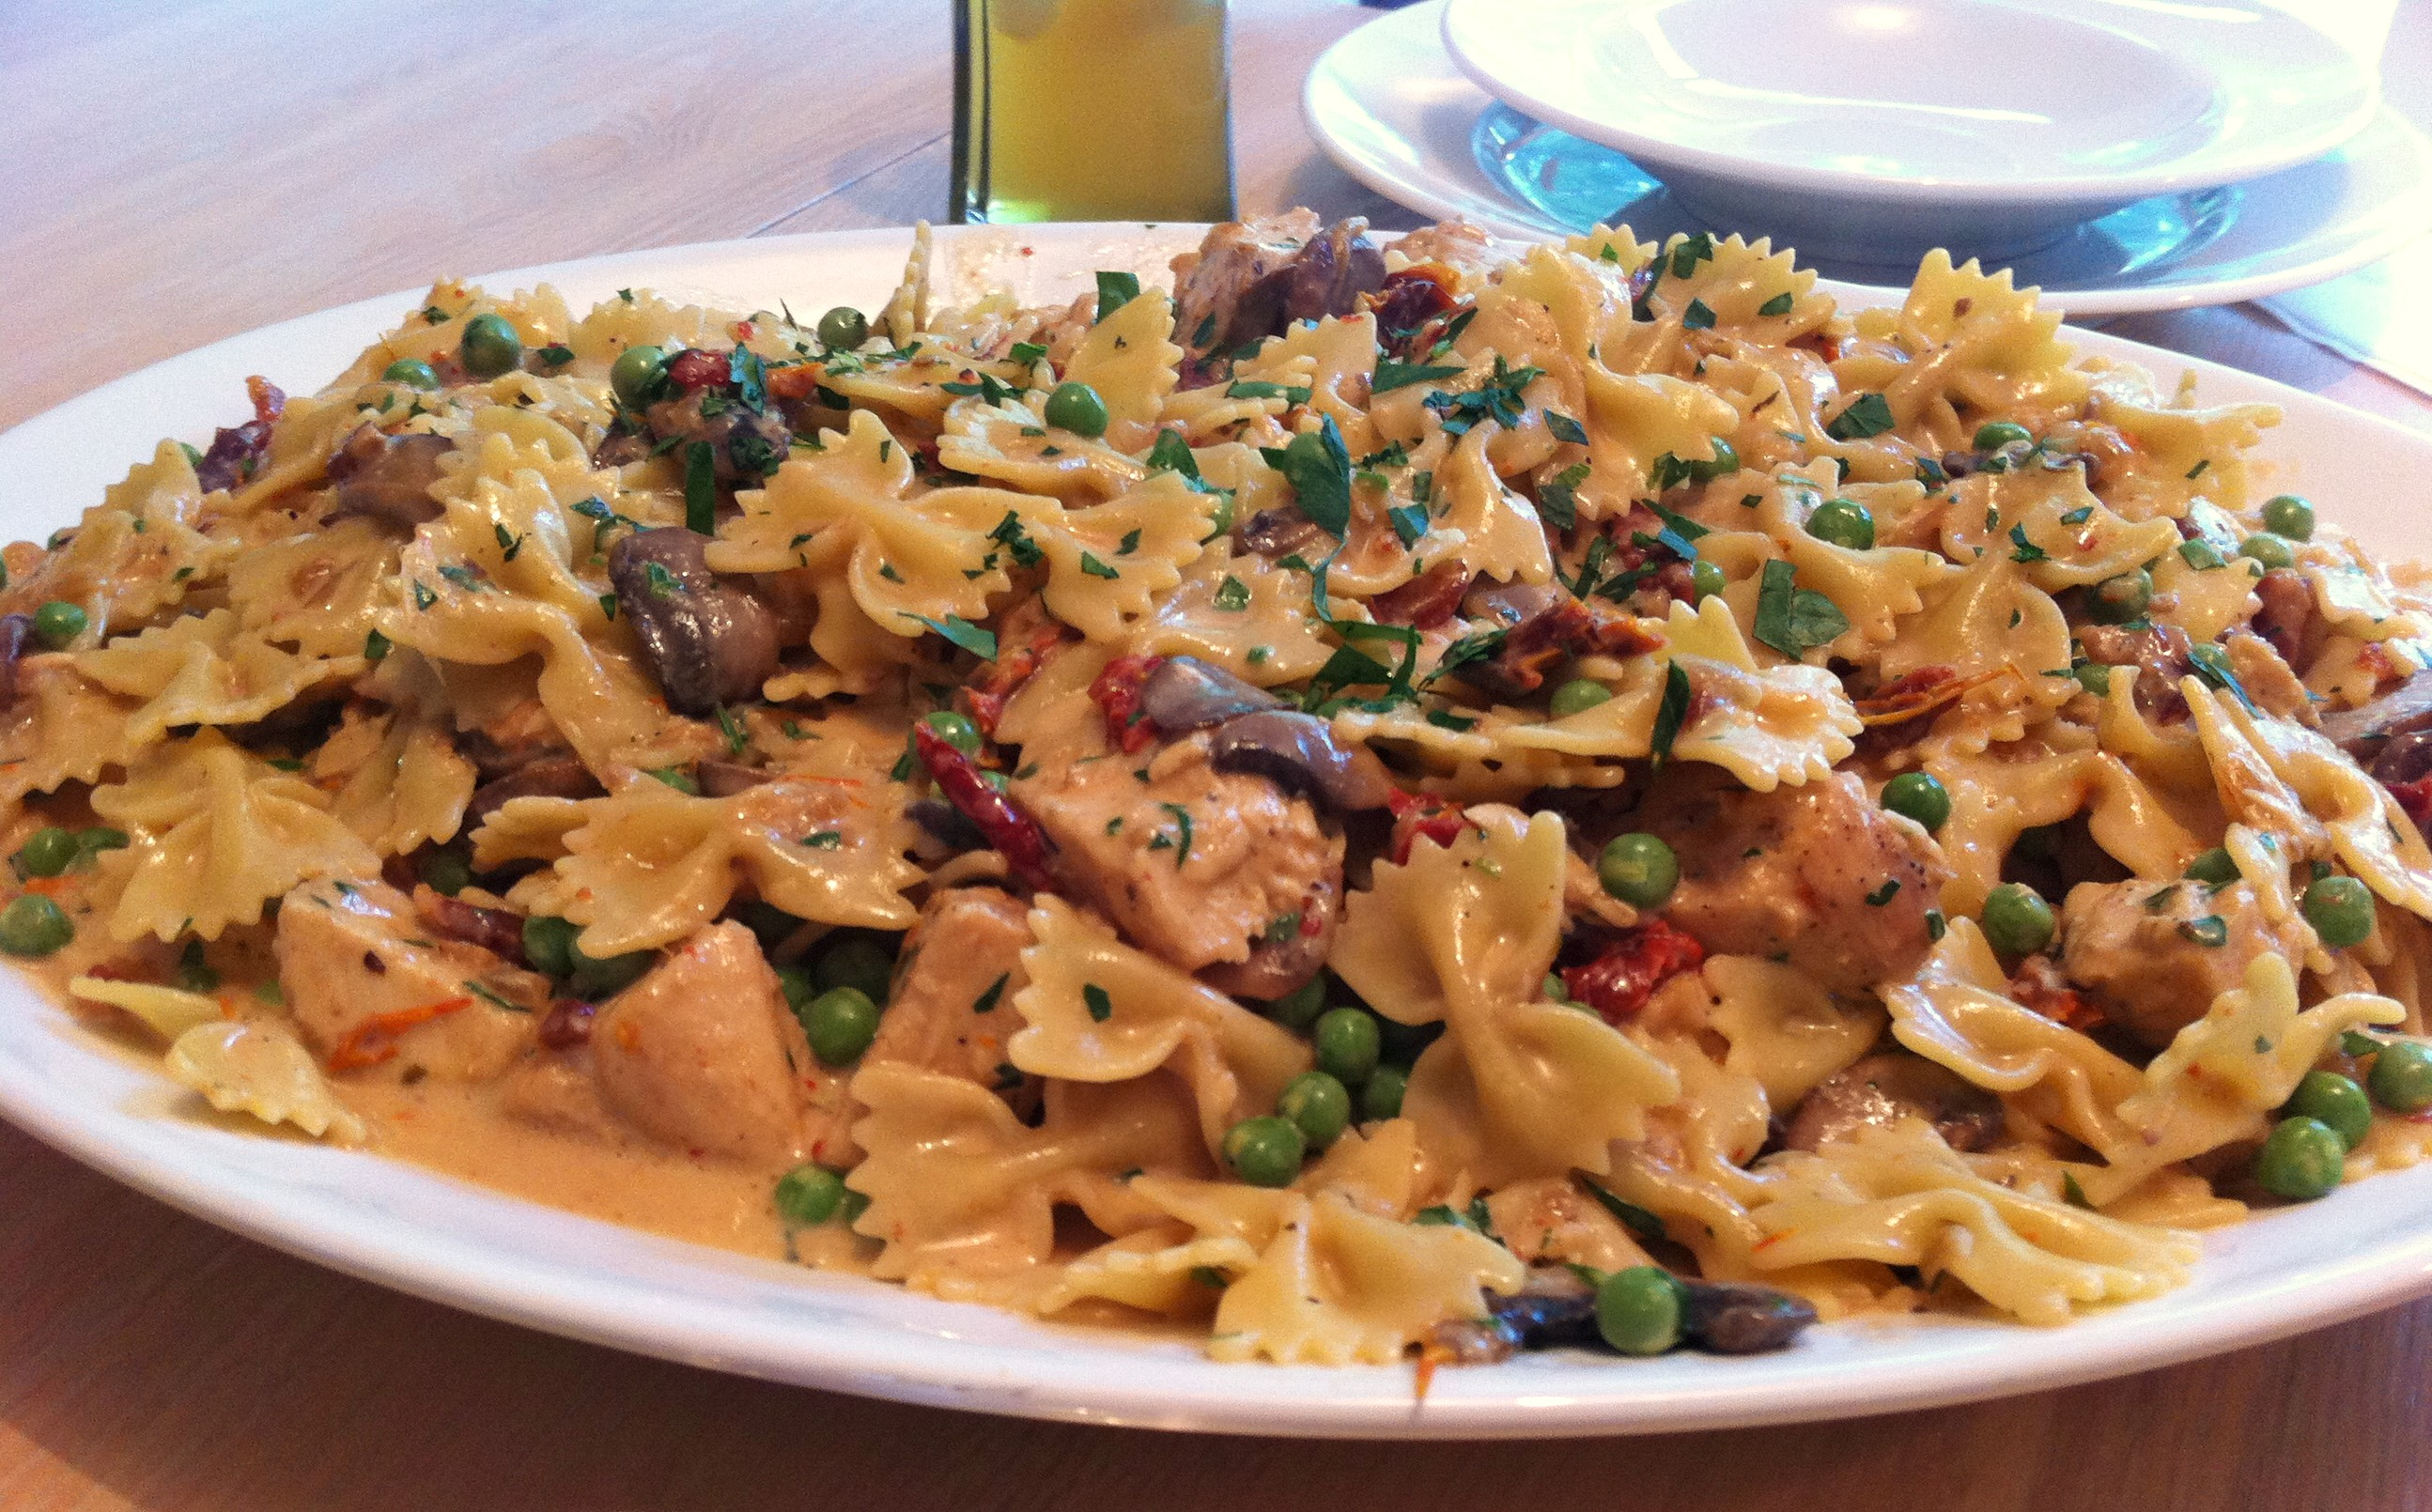 Cheesecake factory pasta recipes farfalle 4